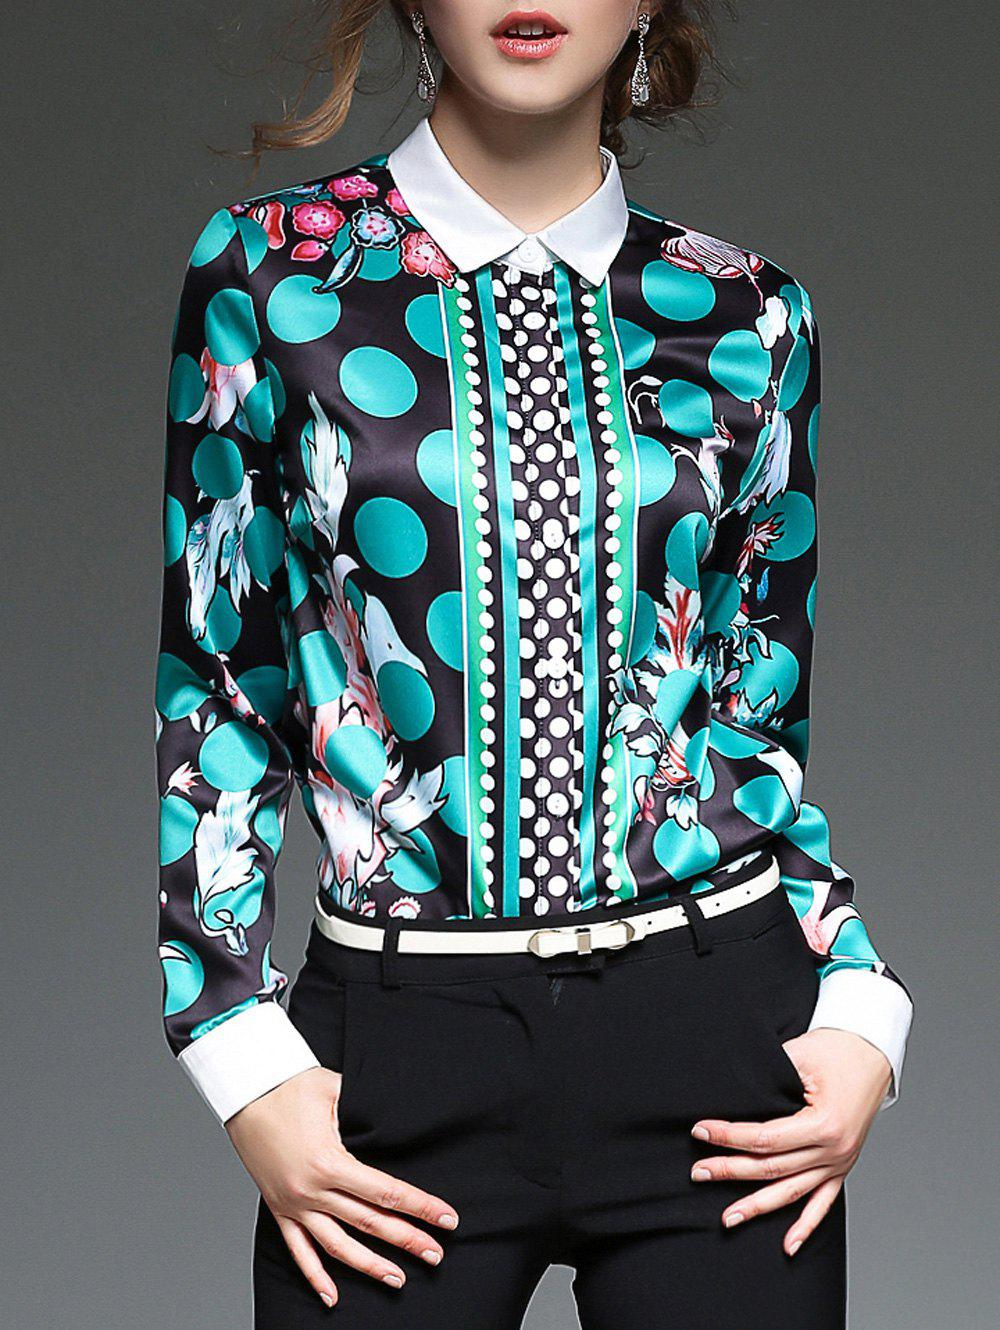 Color Block Polka Dot Blouse - multicolorcolore M